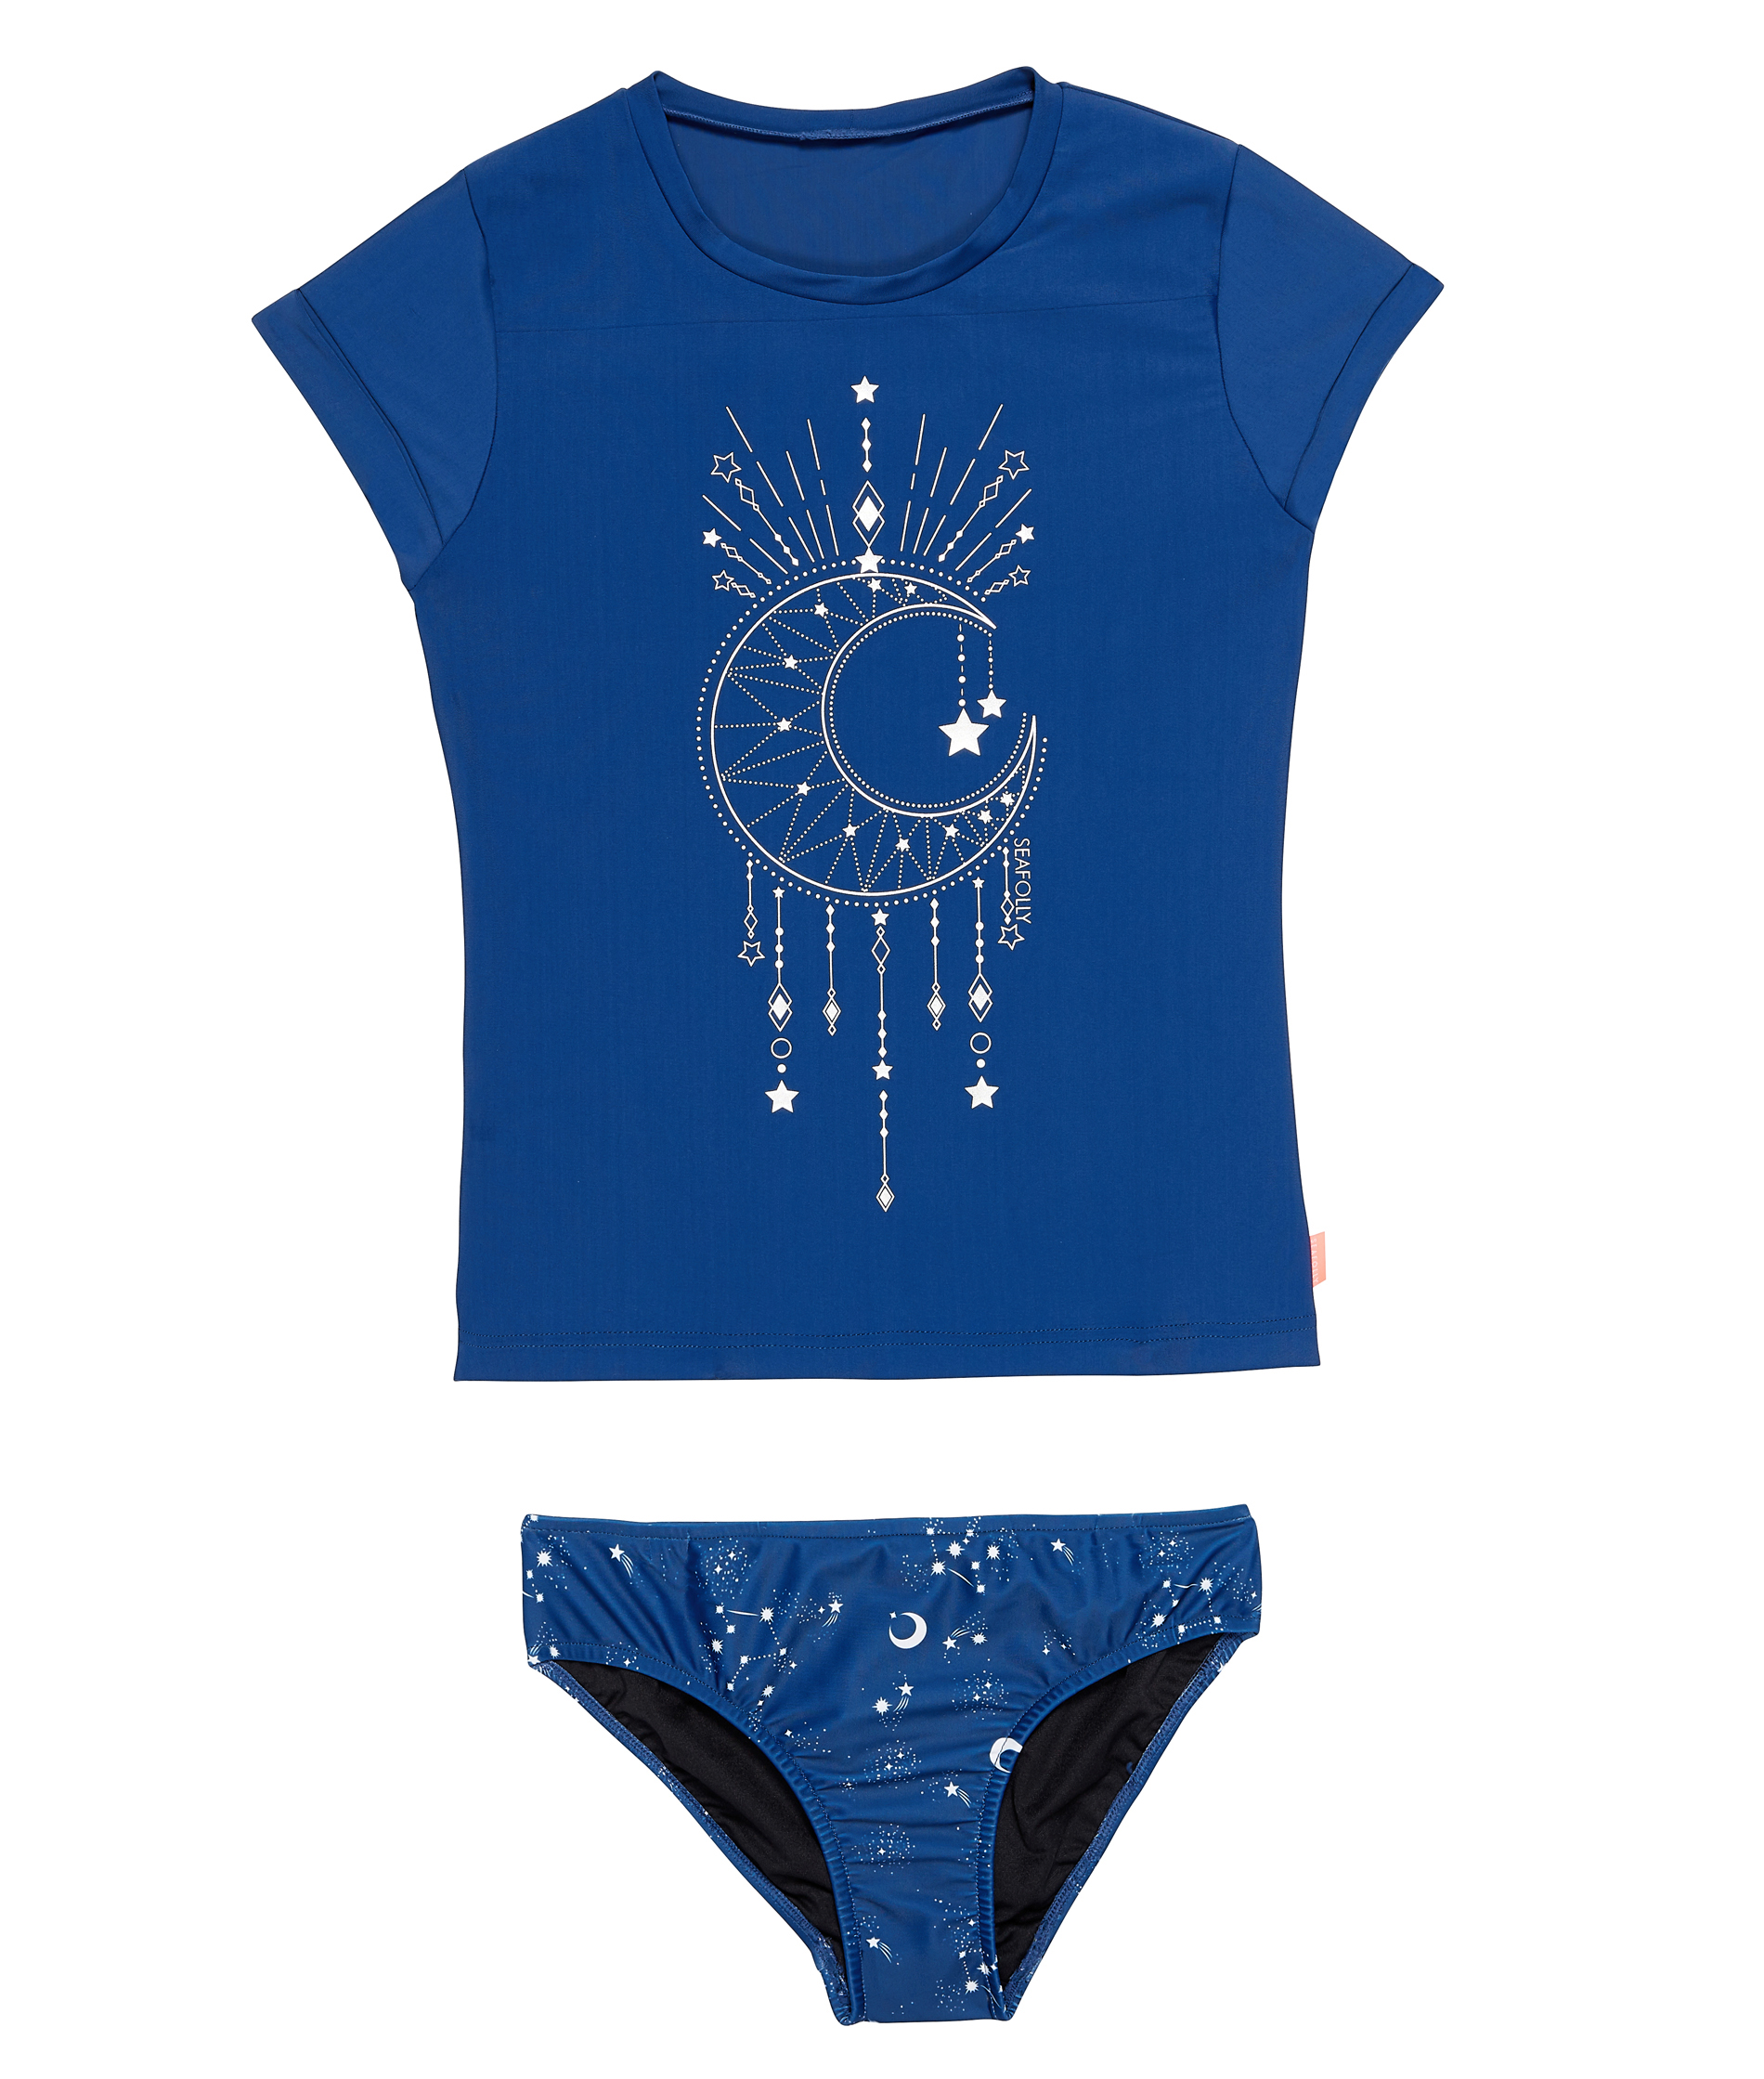 Seafolly Kids Luna Love Galaxy Blue Short Sleeve Surf Set